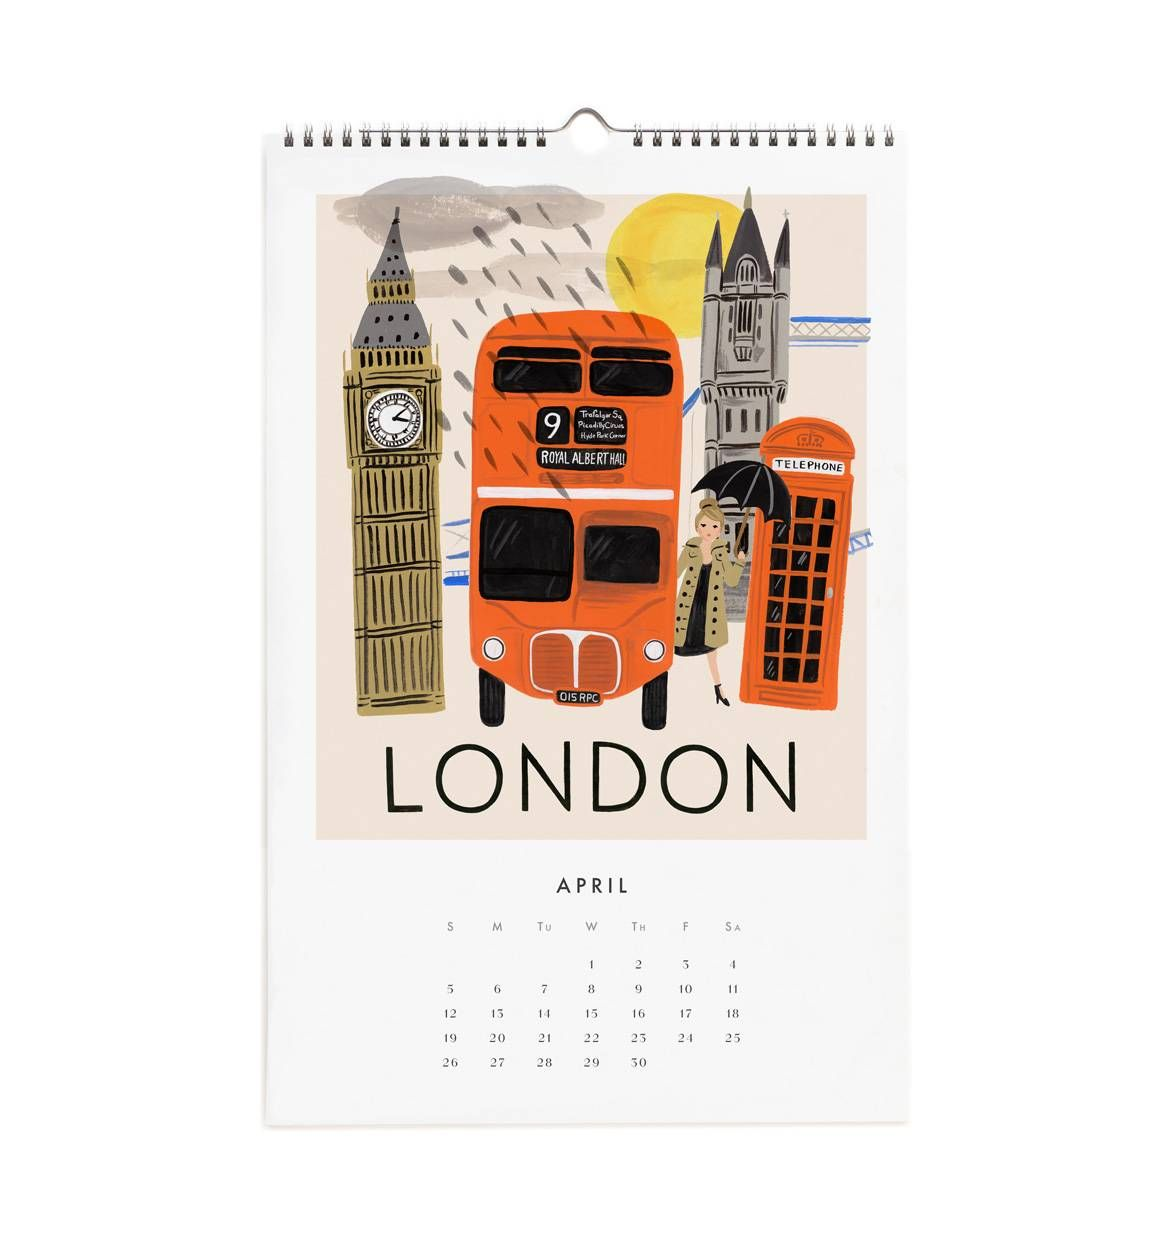 2015 Travel The World Wall Calendar By RIFLE PAPER Co